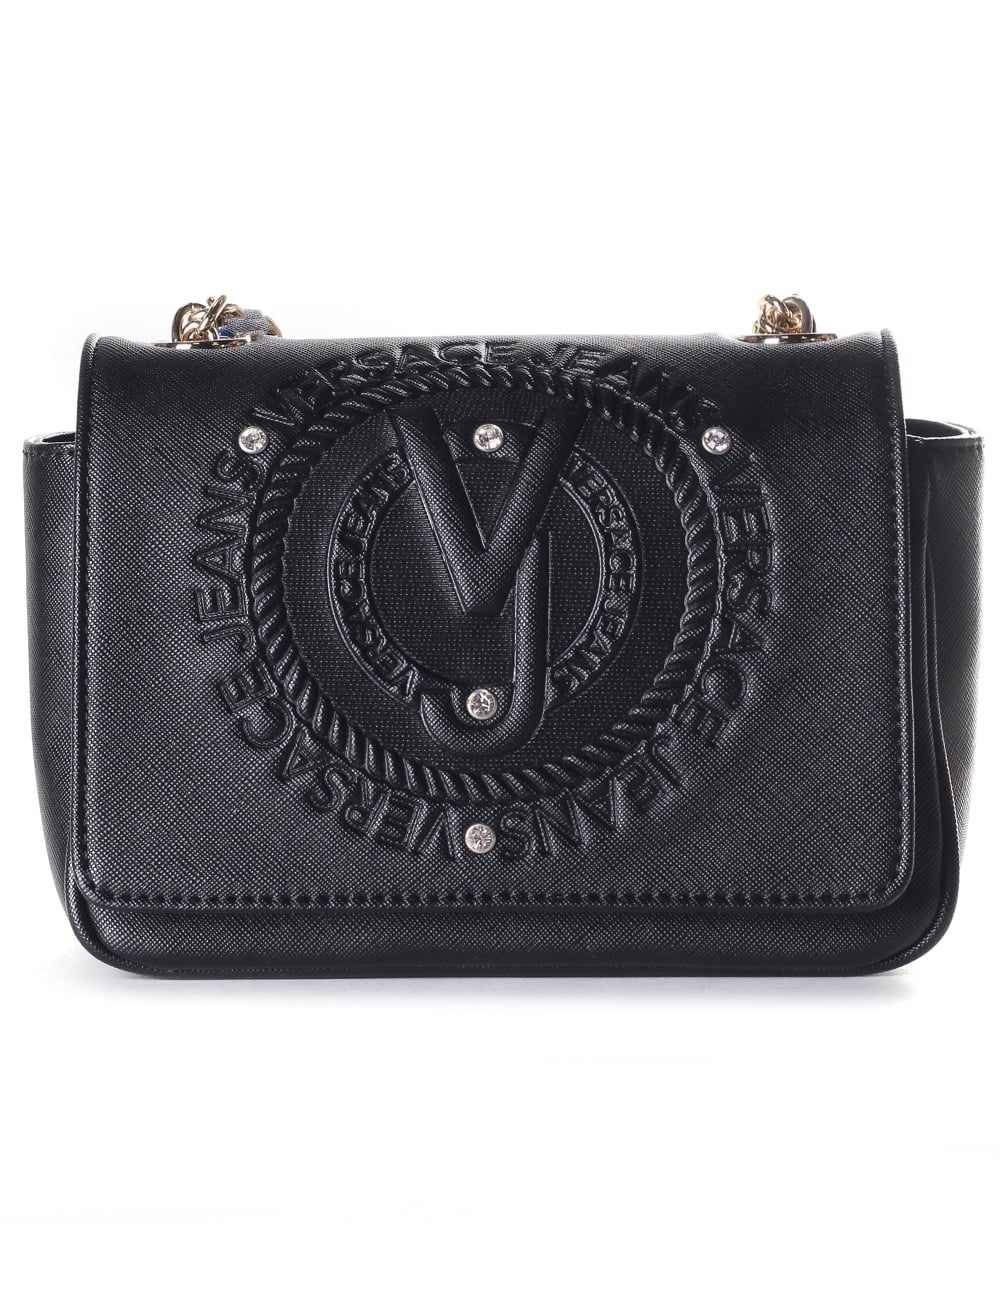 Versace Jeans Embossed Logo Women s Chain Strap Bag Black 23f1ce8776